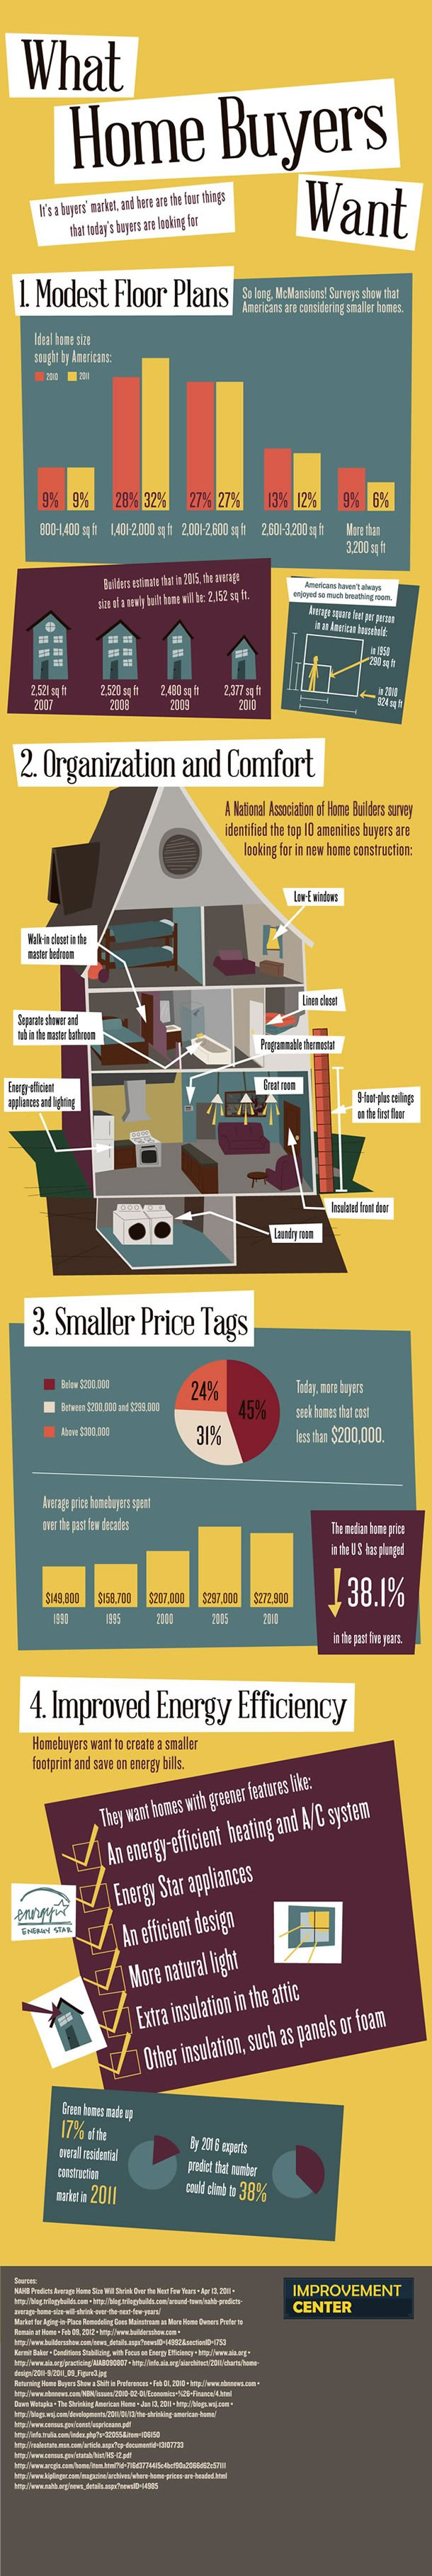 What Do Home Buyers Want Today? This infographic visually organizes the top 4 wants.: